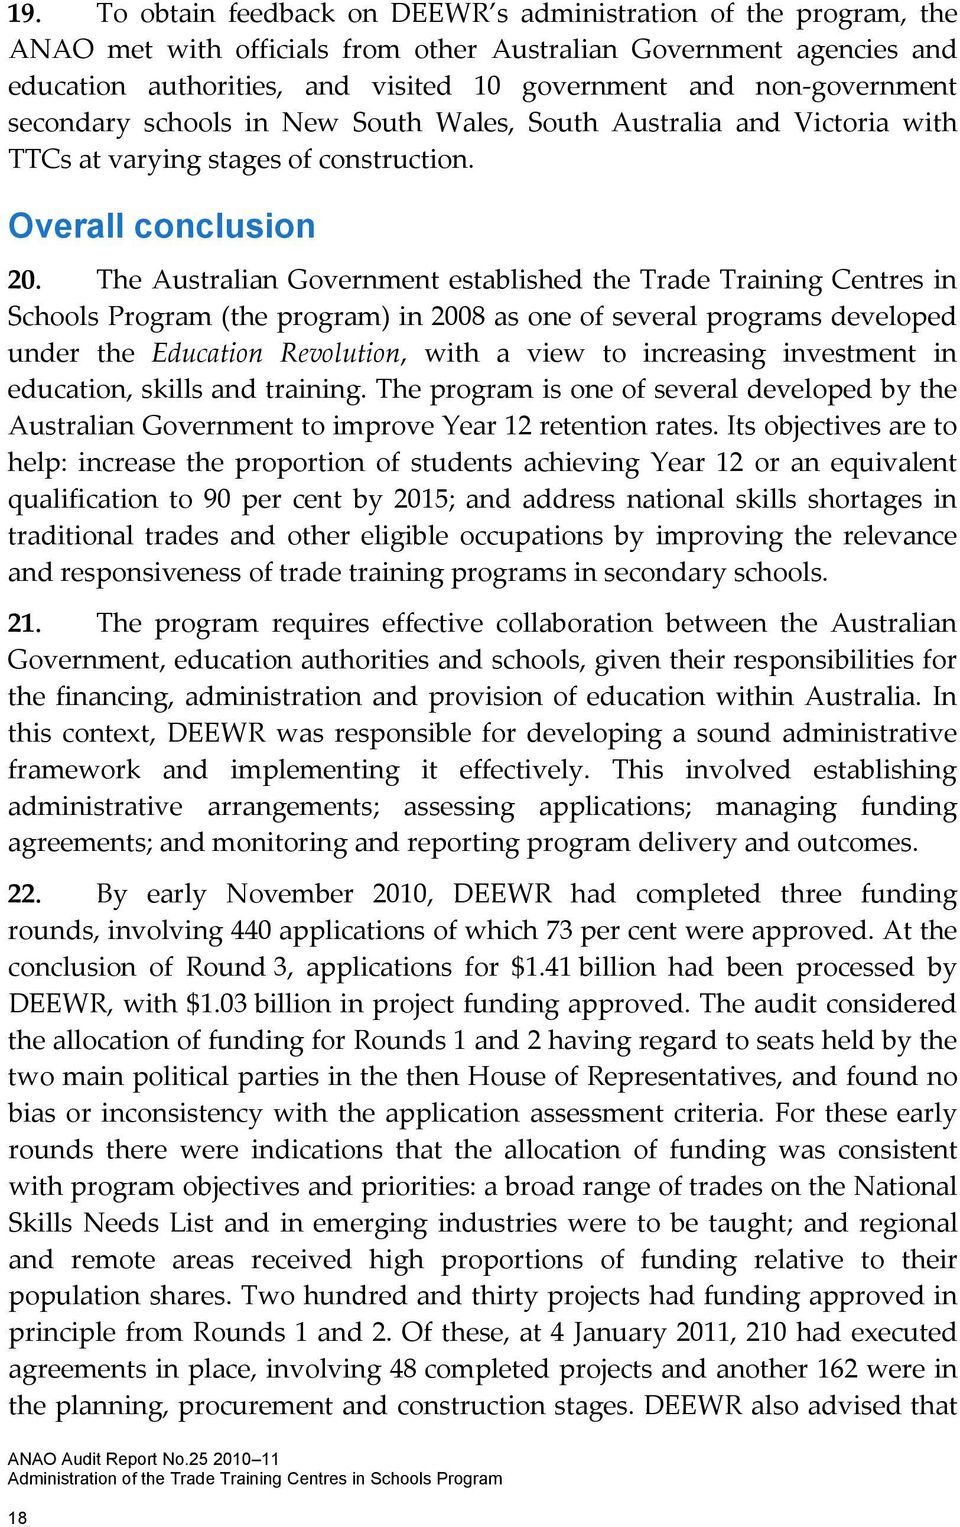 The Australian Government established the Trade Training Centres in Schools Program (the program) in 2008 as one of several programs developed under the Education Revolution, with a view to